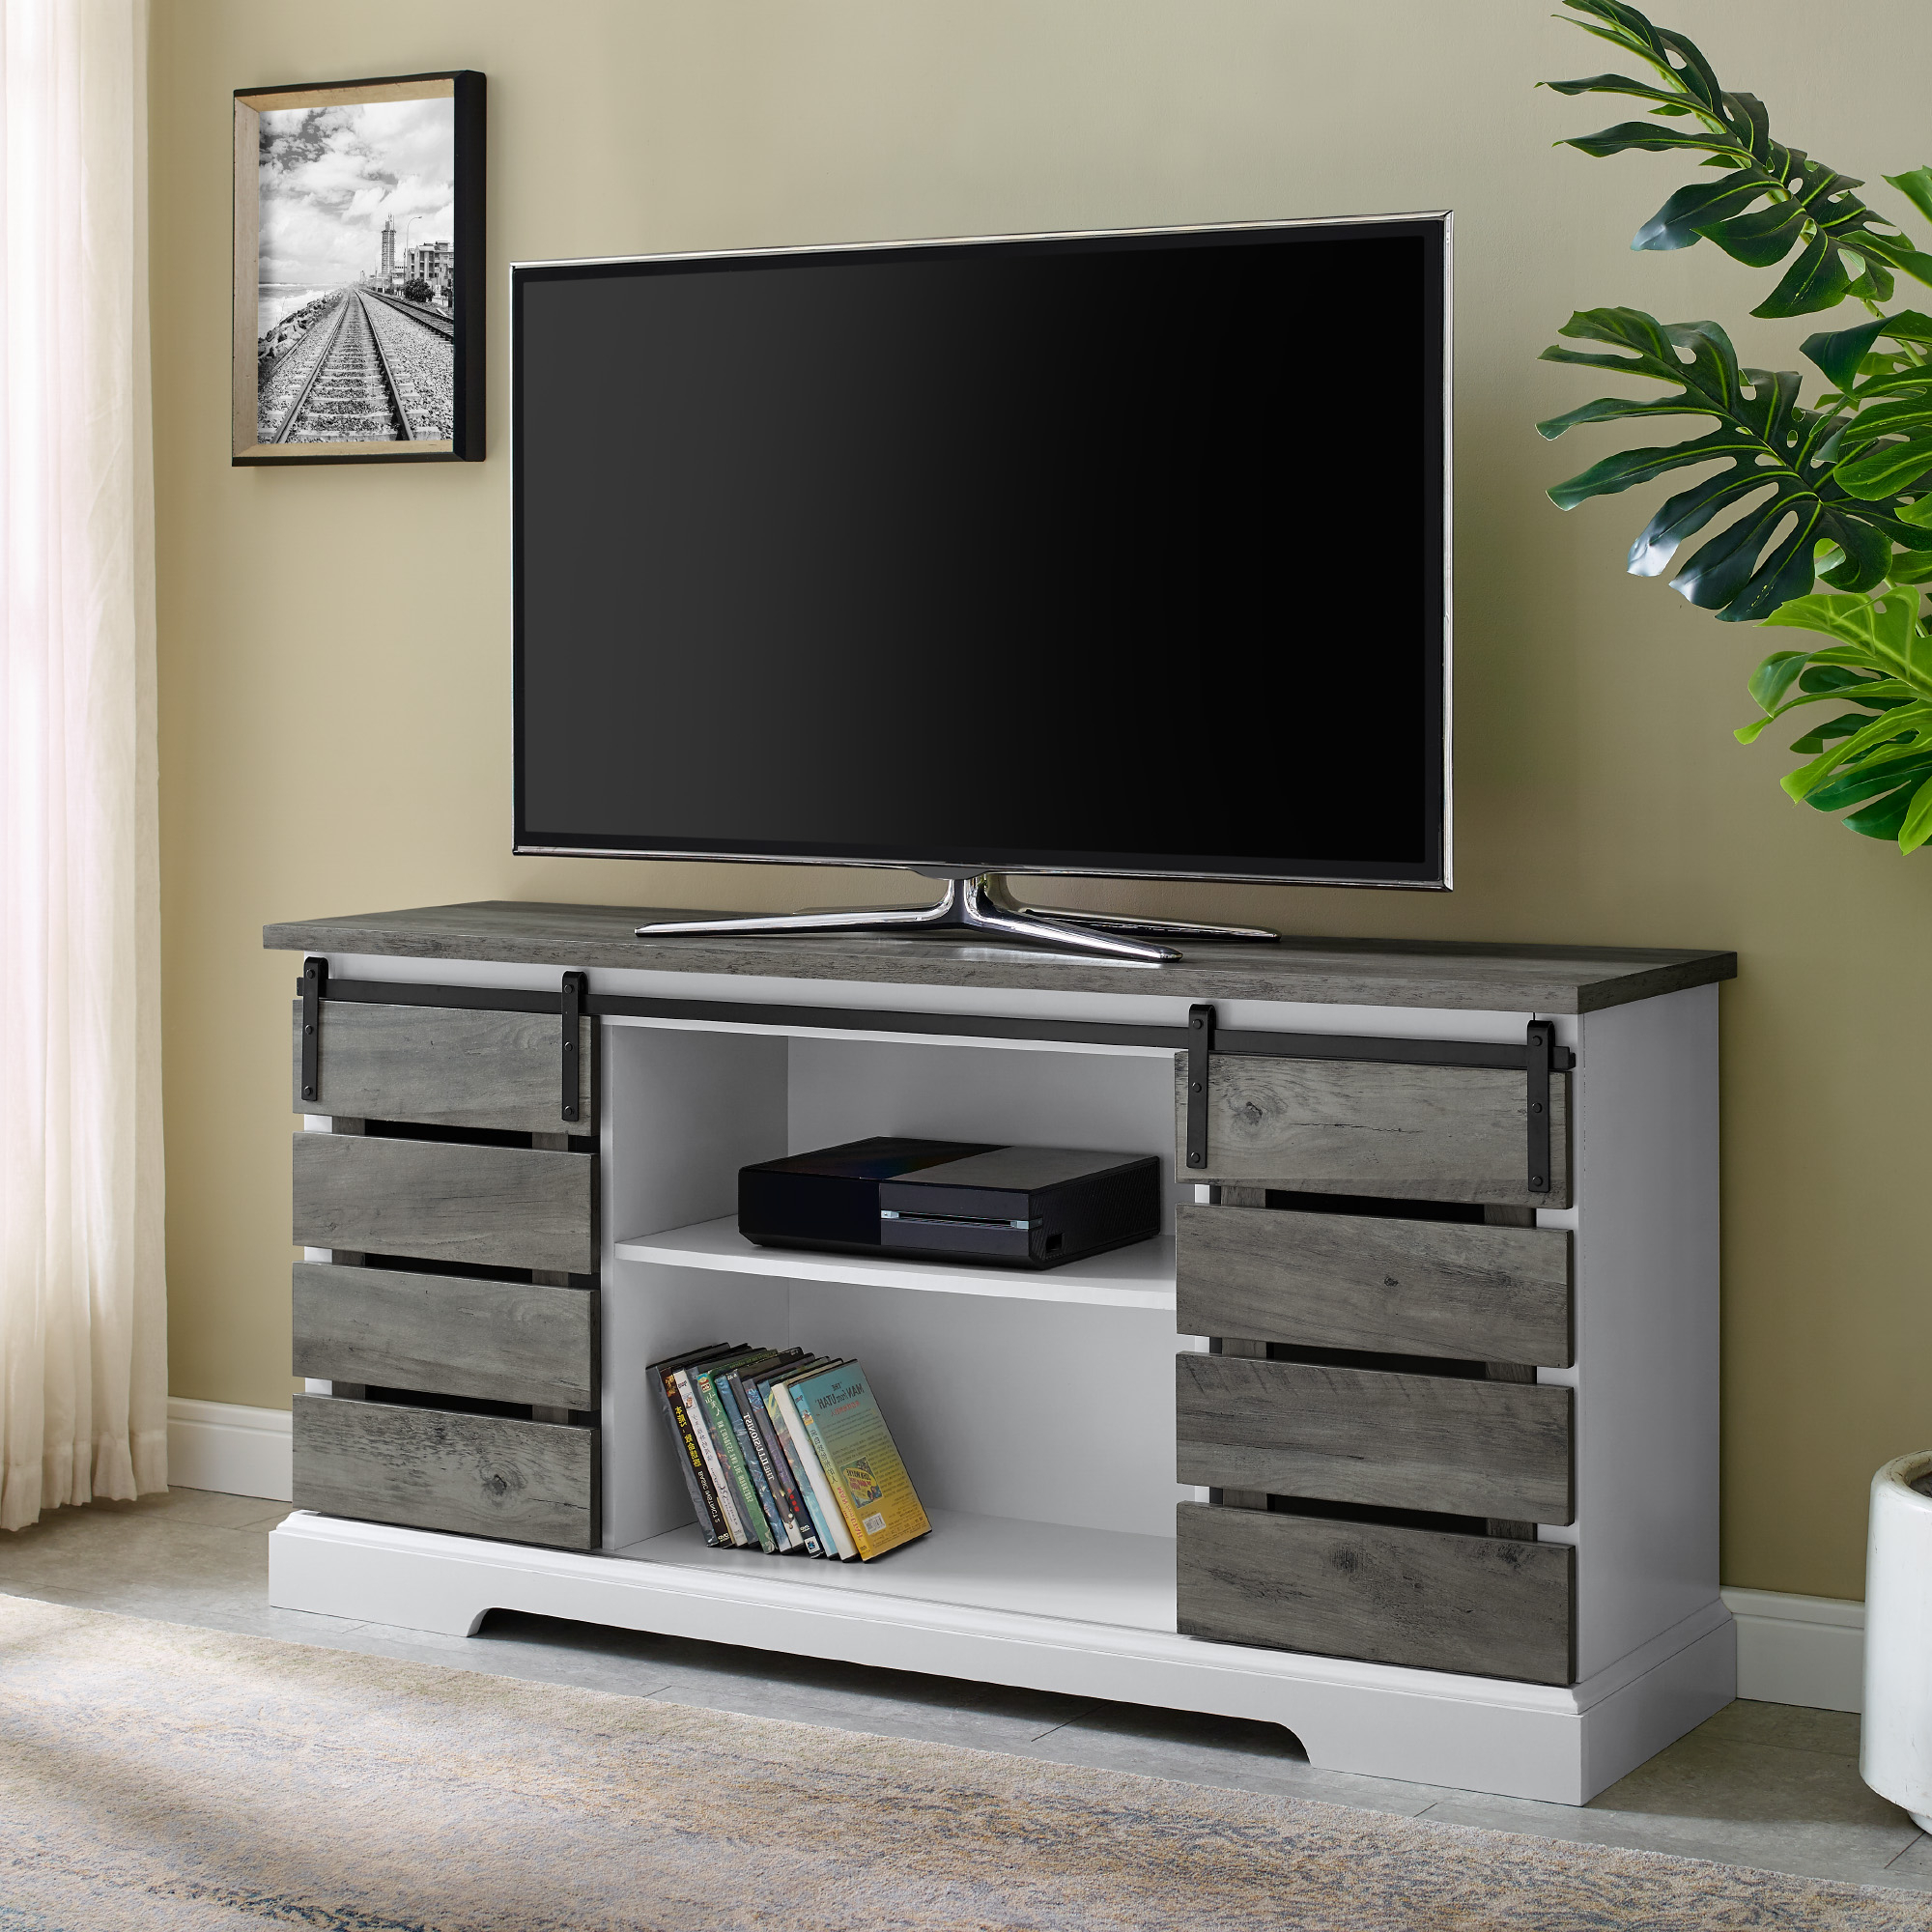 Woven Paths Farmhouse Sliding Slat Door Tv Stand For Tvs With Woven Paths Farmhouse Sliding Barn Door Tv Stands With Multiple Finishes (View 2 of 14)